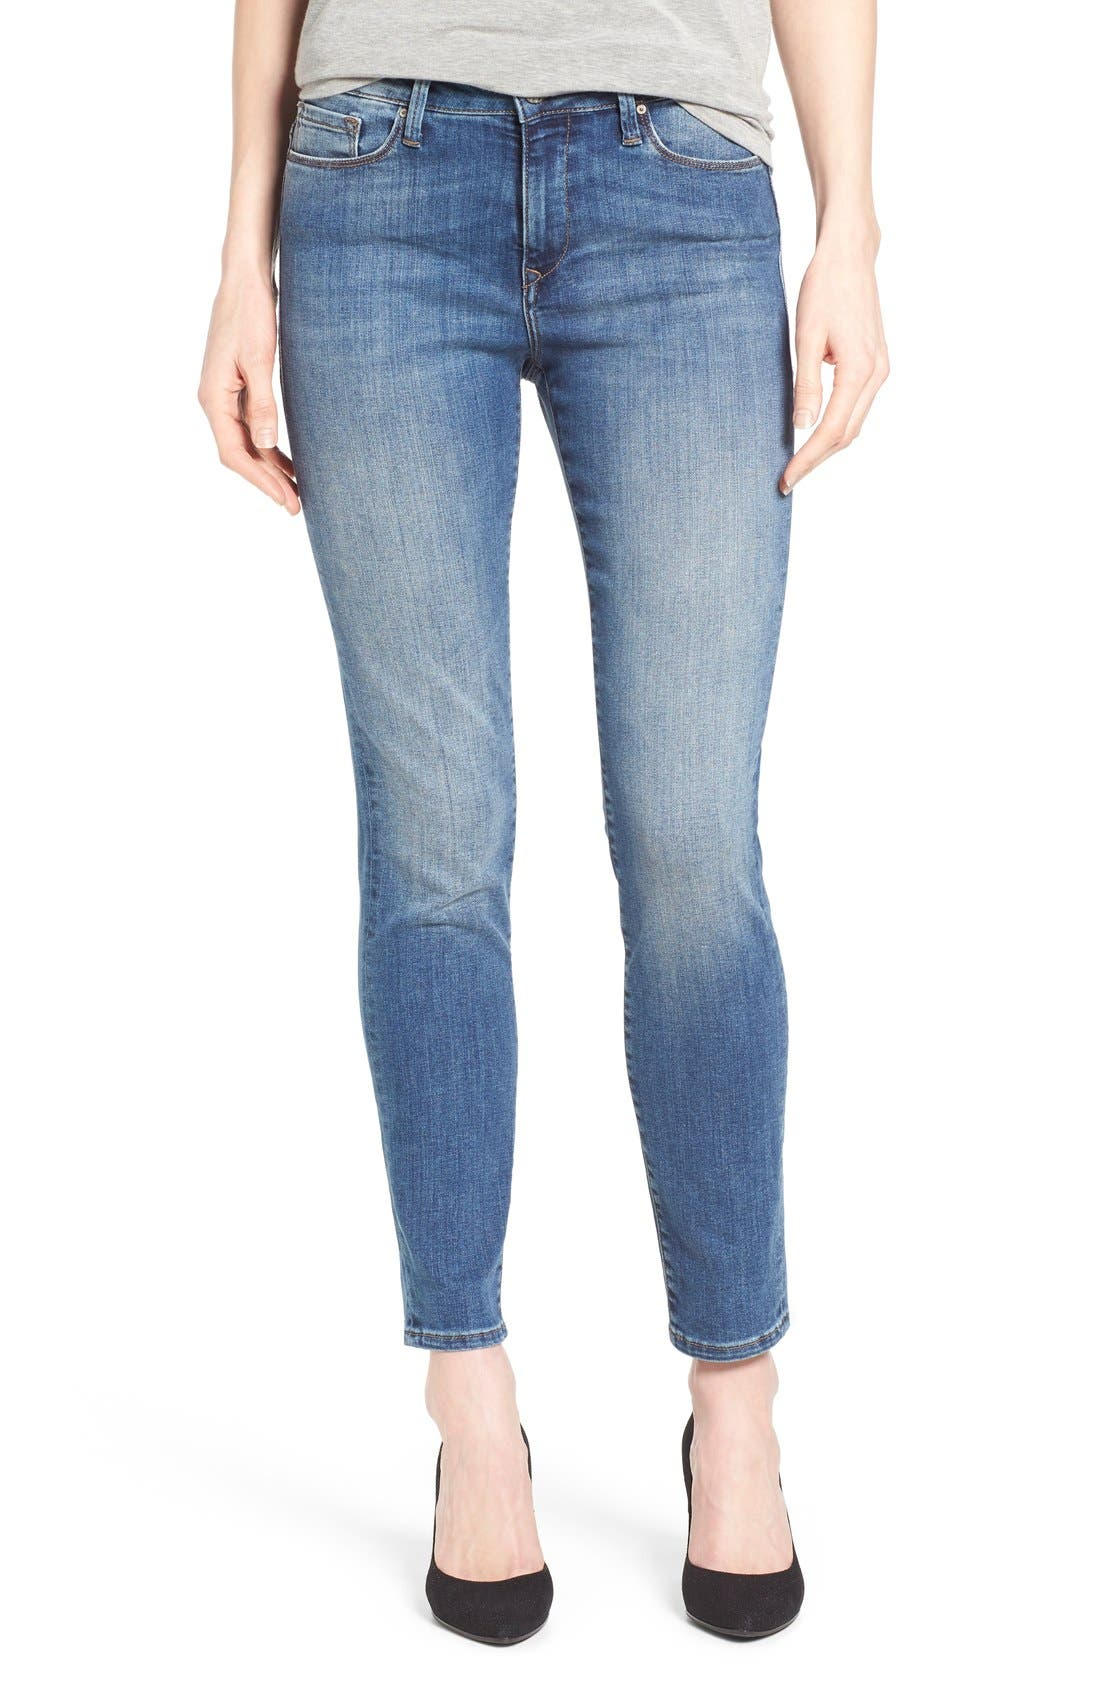 'Alissa' Stretch Slim Ankle Jeans,                             Main thumbnail 1, color,